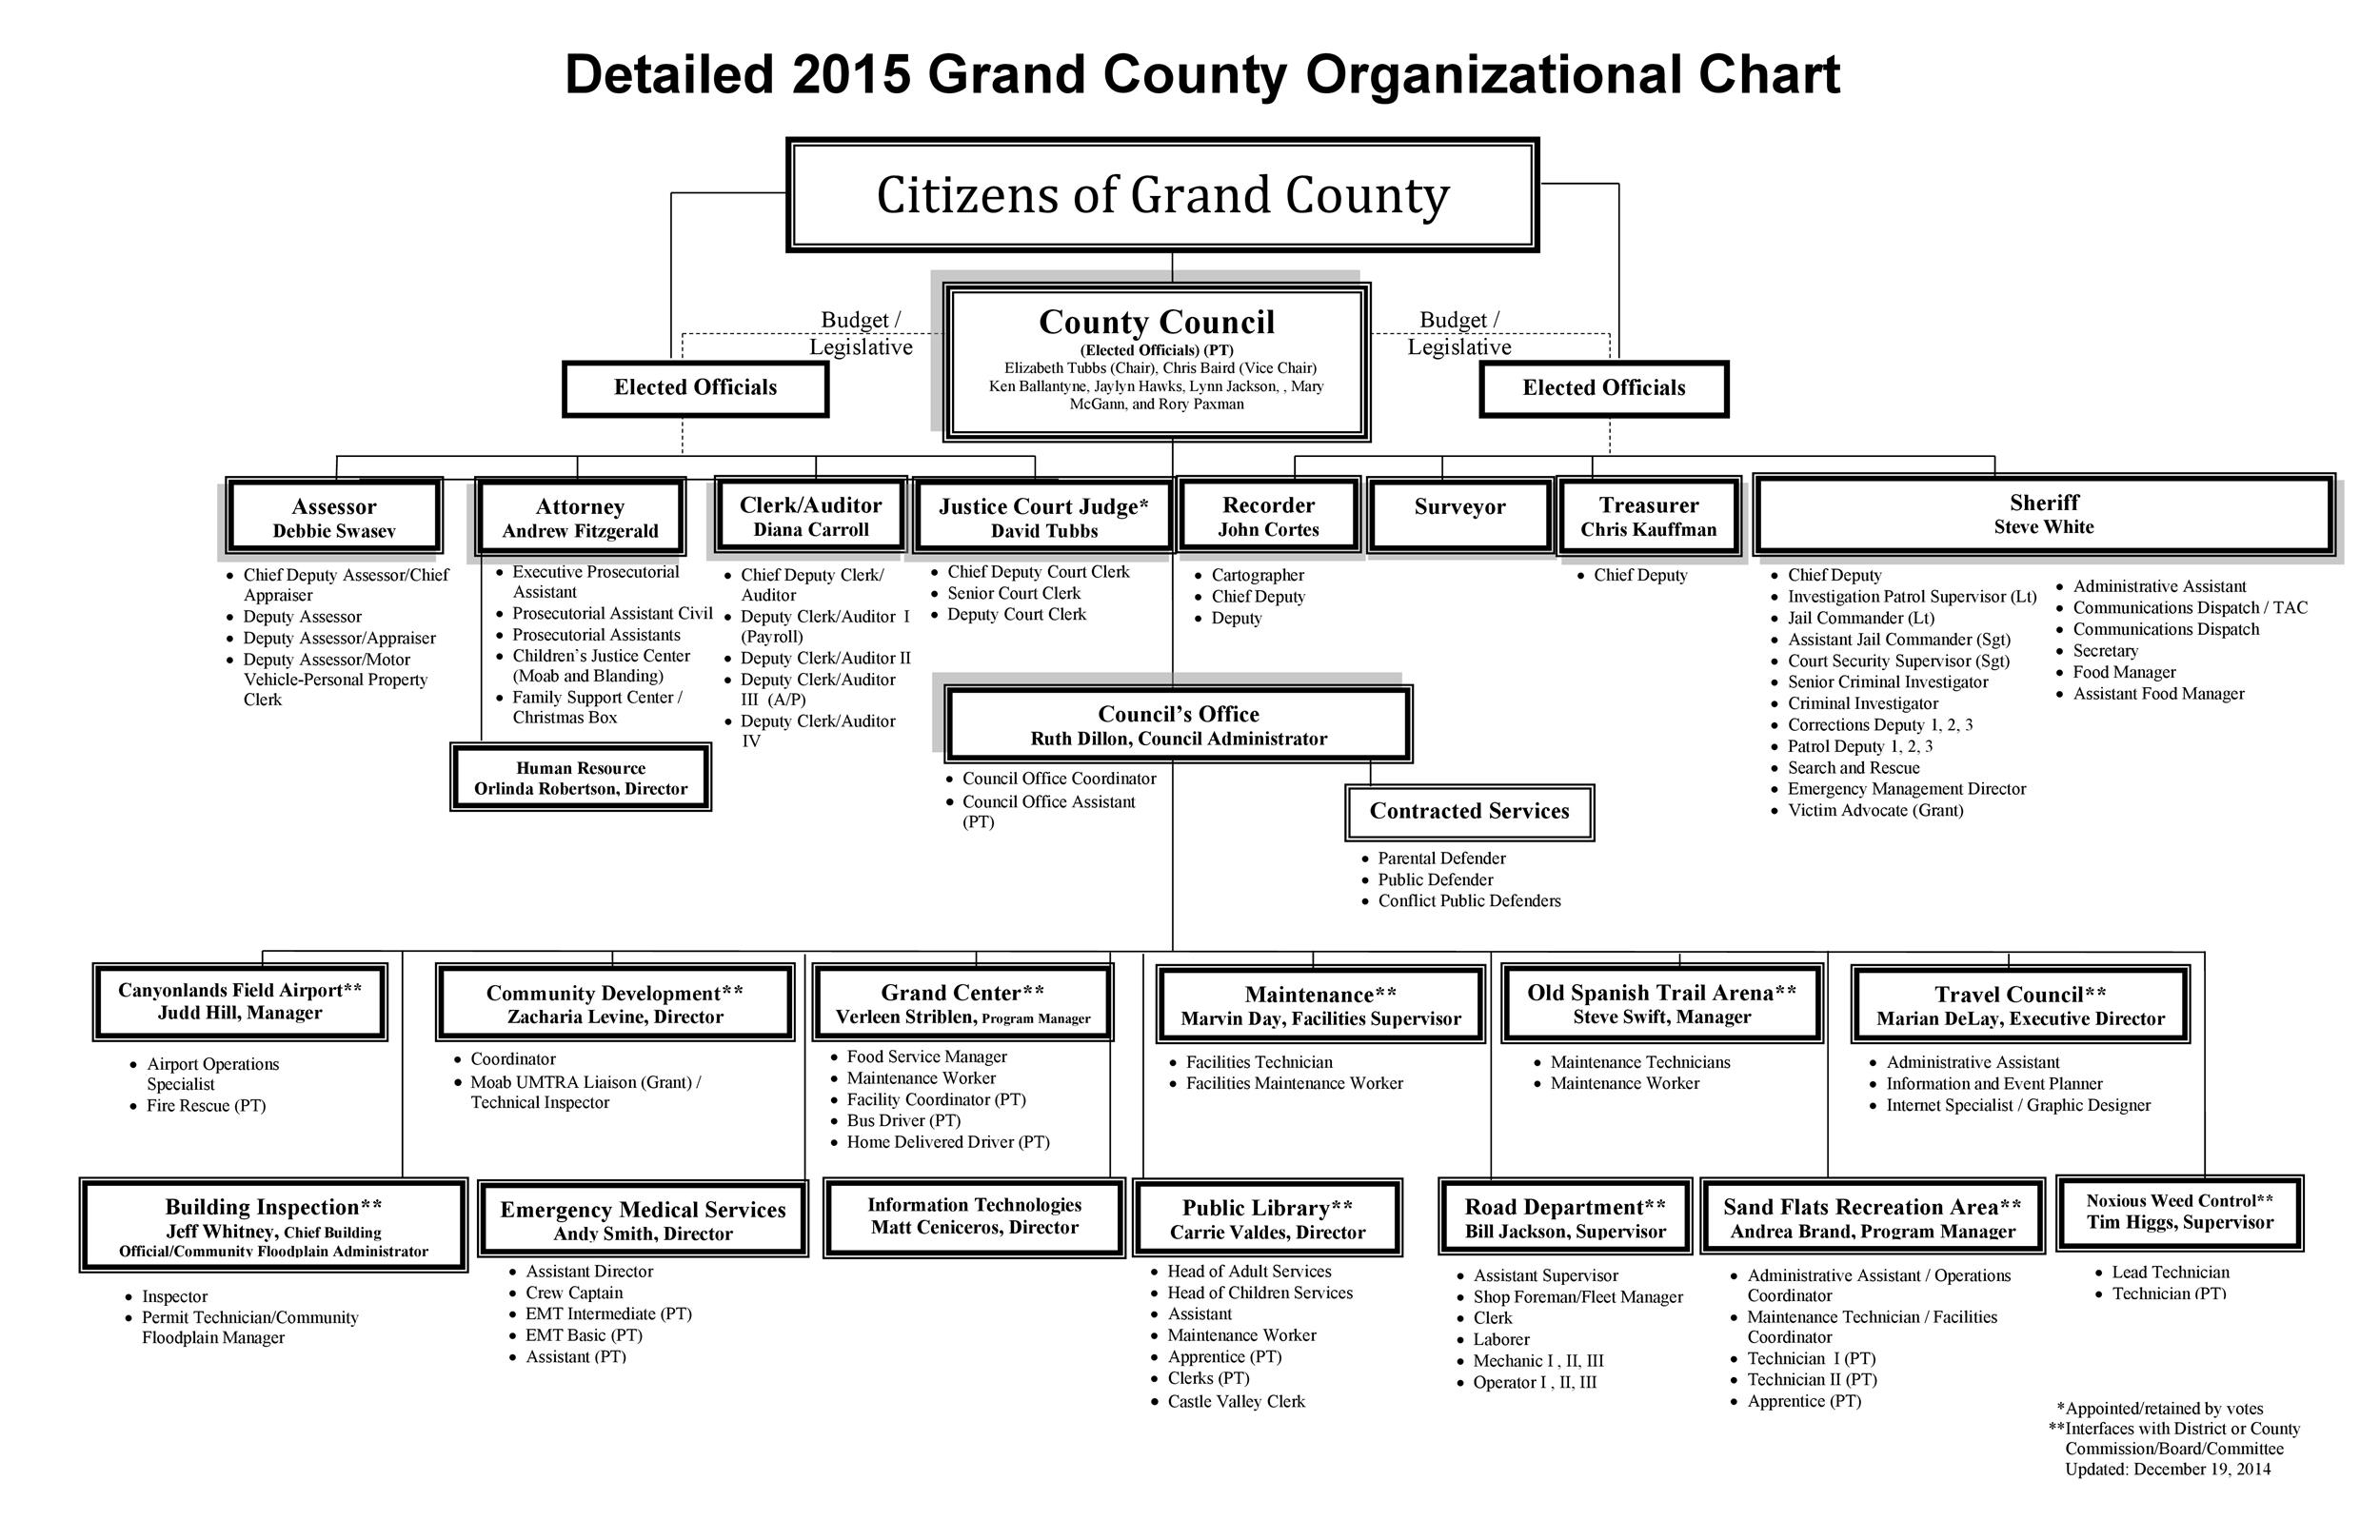 40 Organizational Chart Templates (Word, Excel, PowerPoint) - job duty template